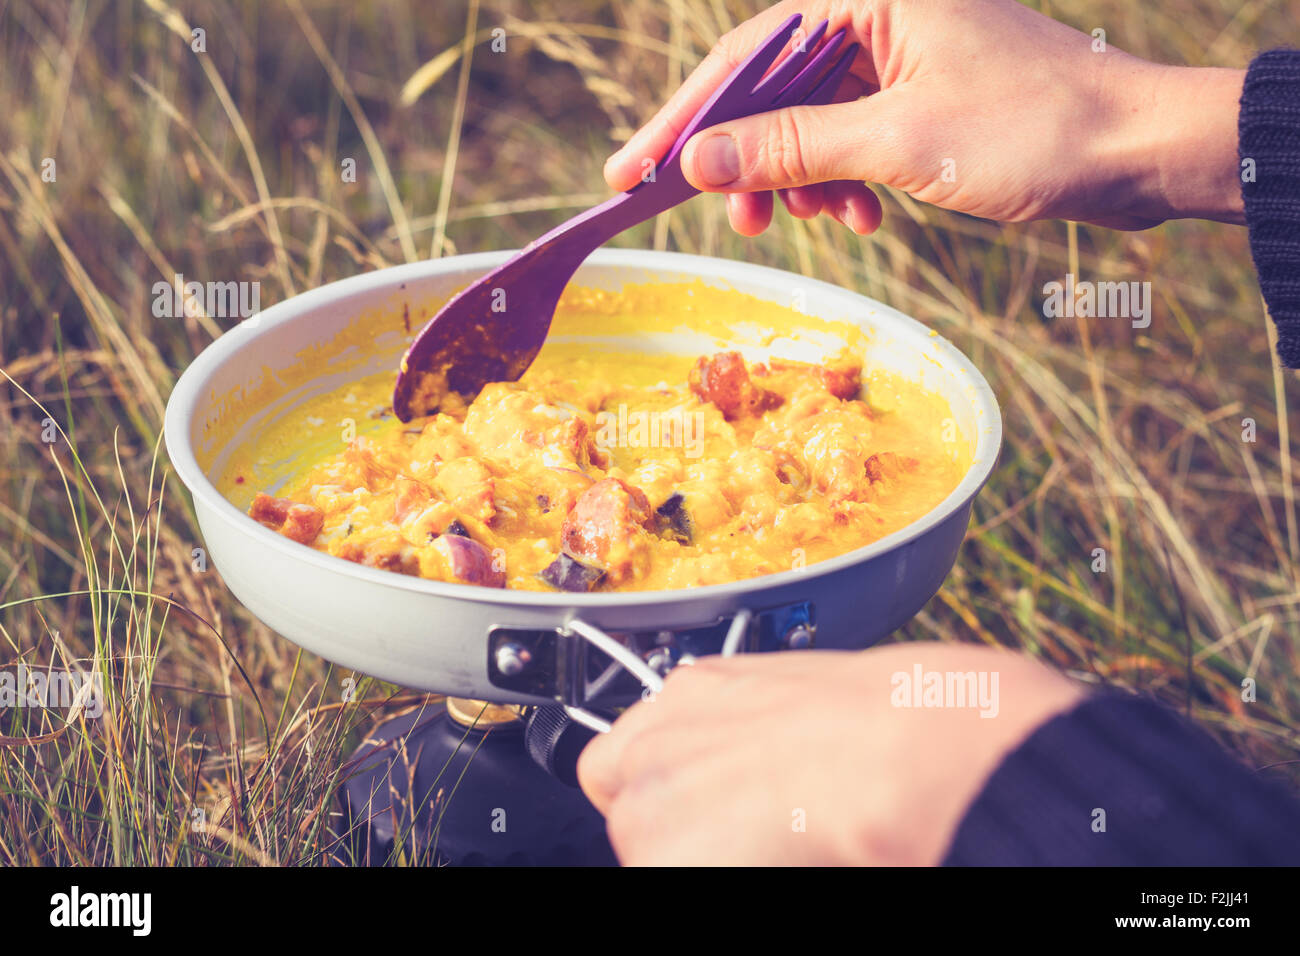 Hands of woman cooking egg outside on camping stove - Stock Image